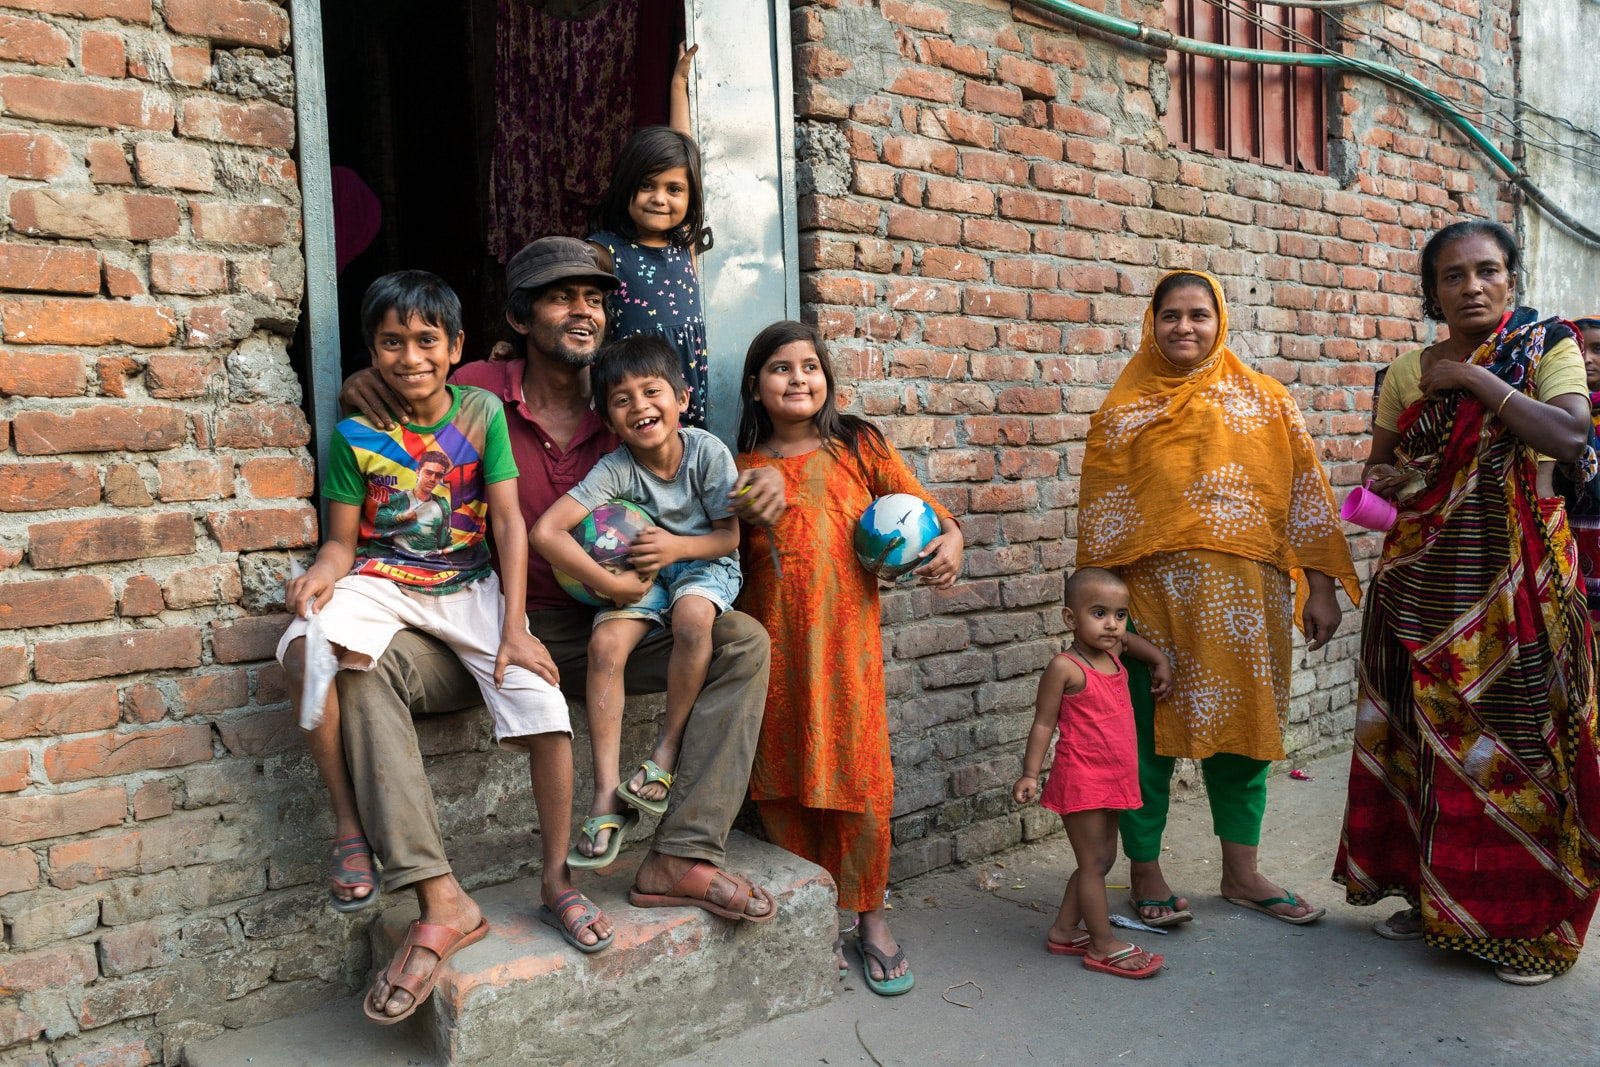 Reflections - Family sitting outside their home on the outskirts of Dhaka, Bangladesh - Lost With Purpose travel blog